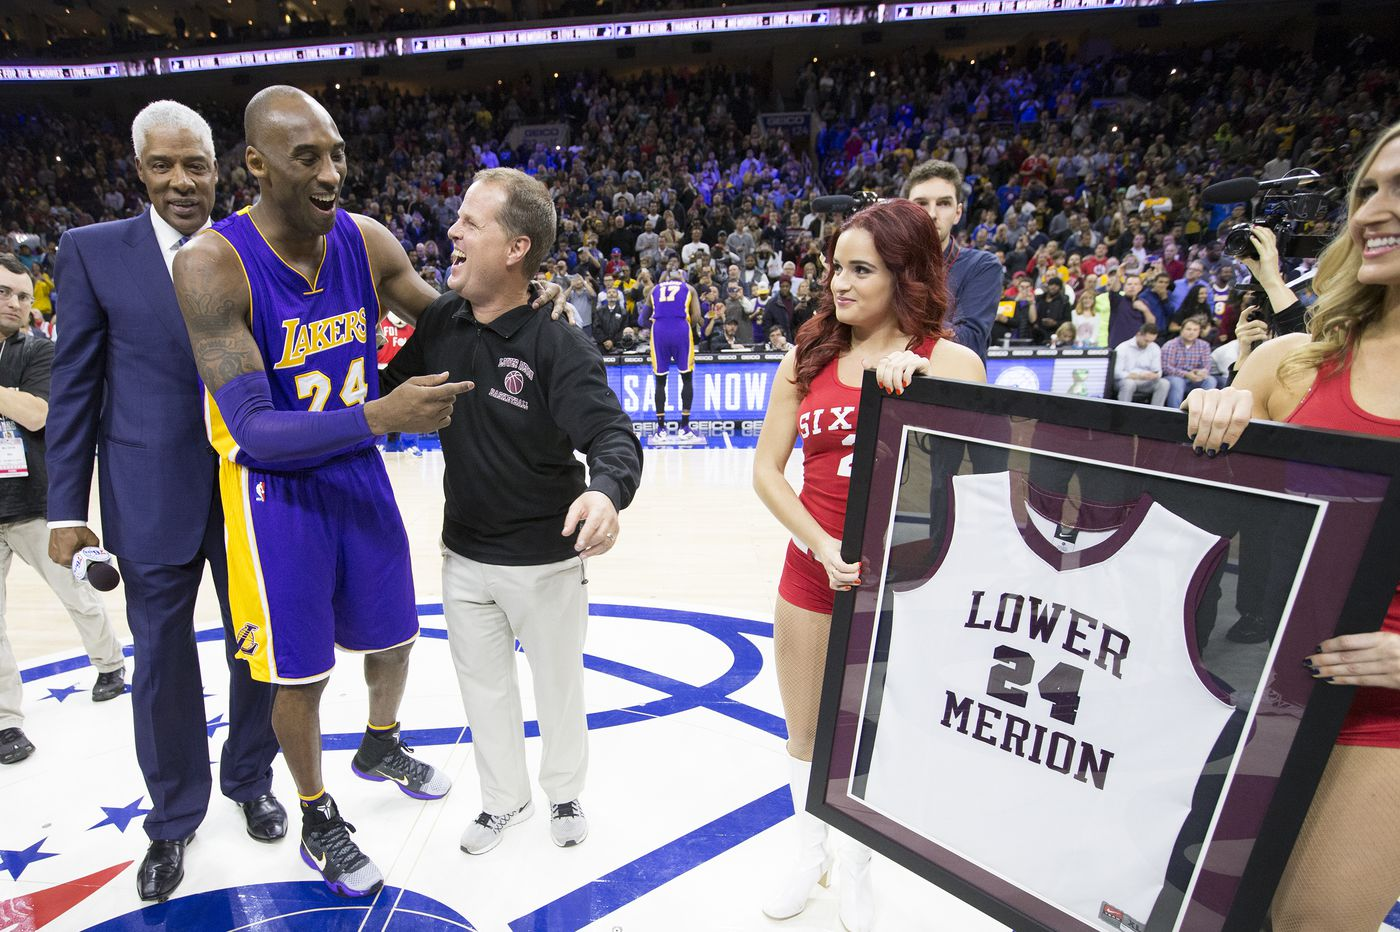 Kobe Bryant's life by the numbers, from Lower Merion to the Lakers to the Oscars